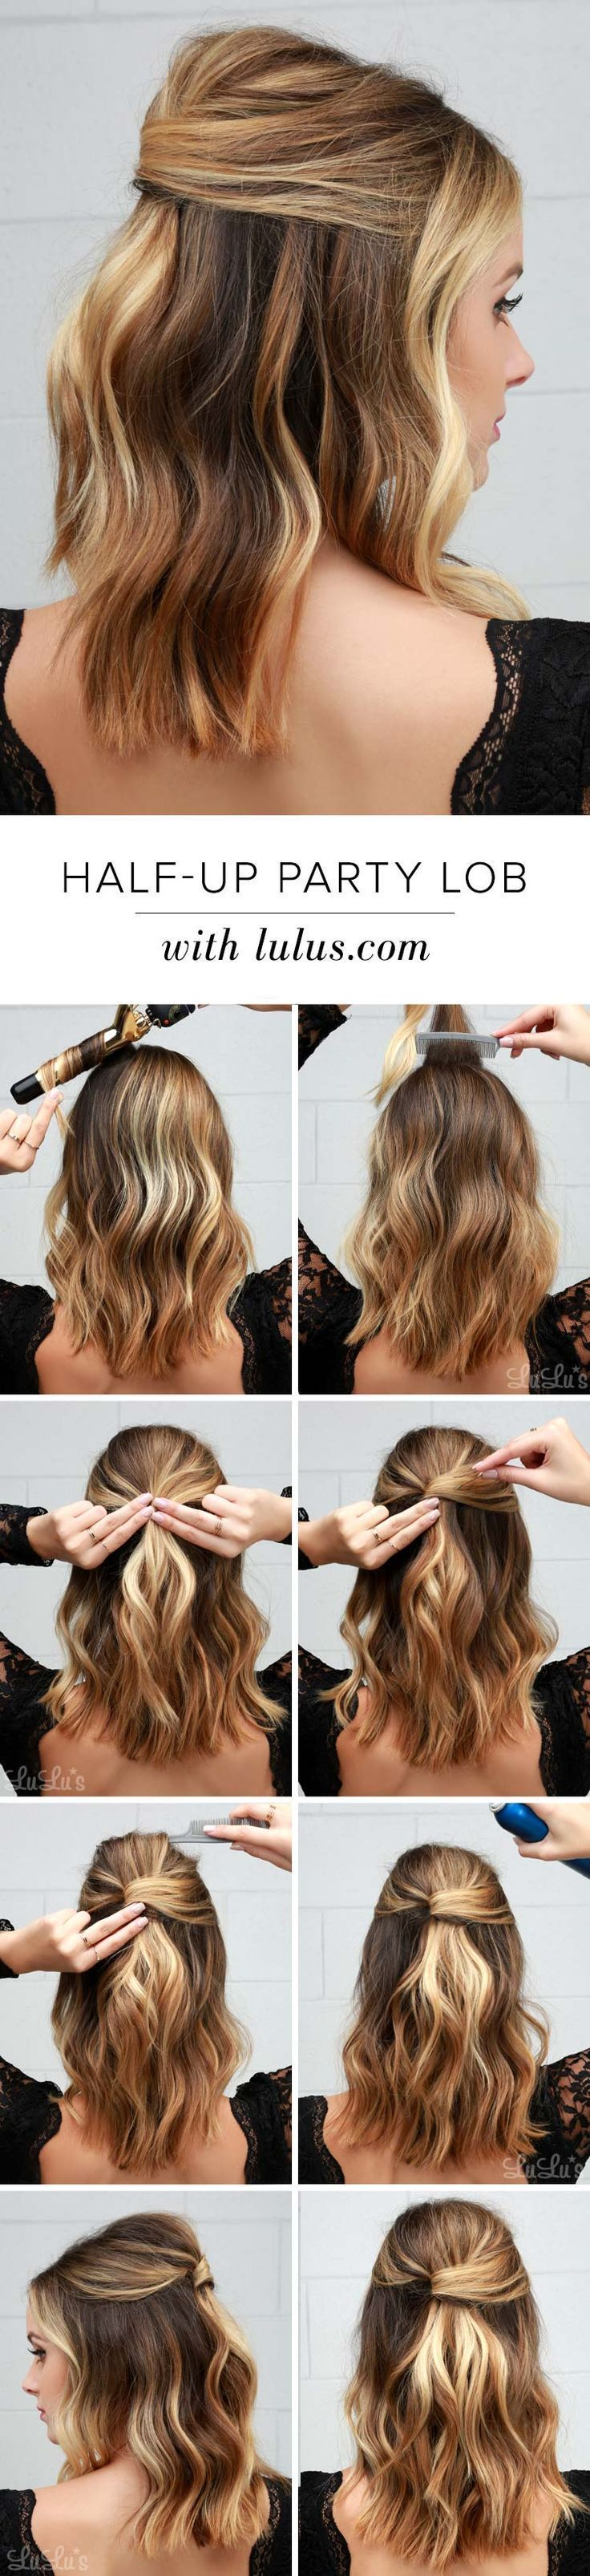 The 199 best Medium Hairstyles images on Pinterest